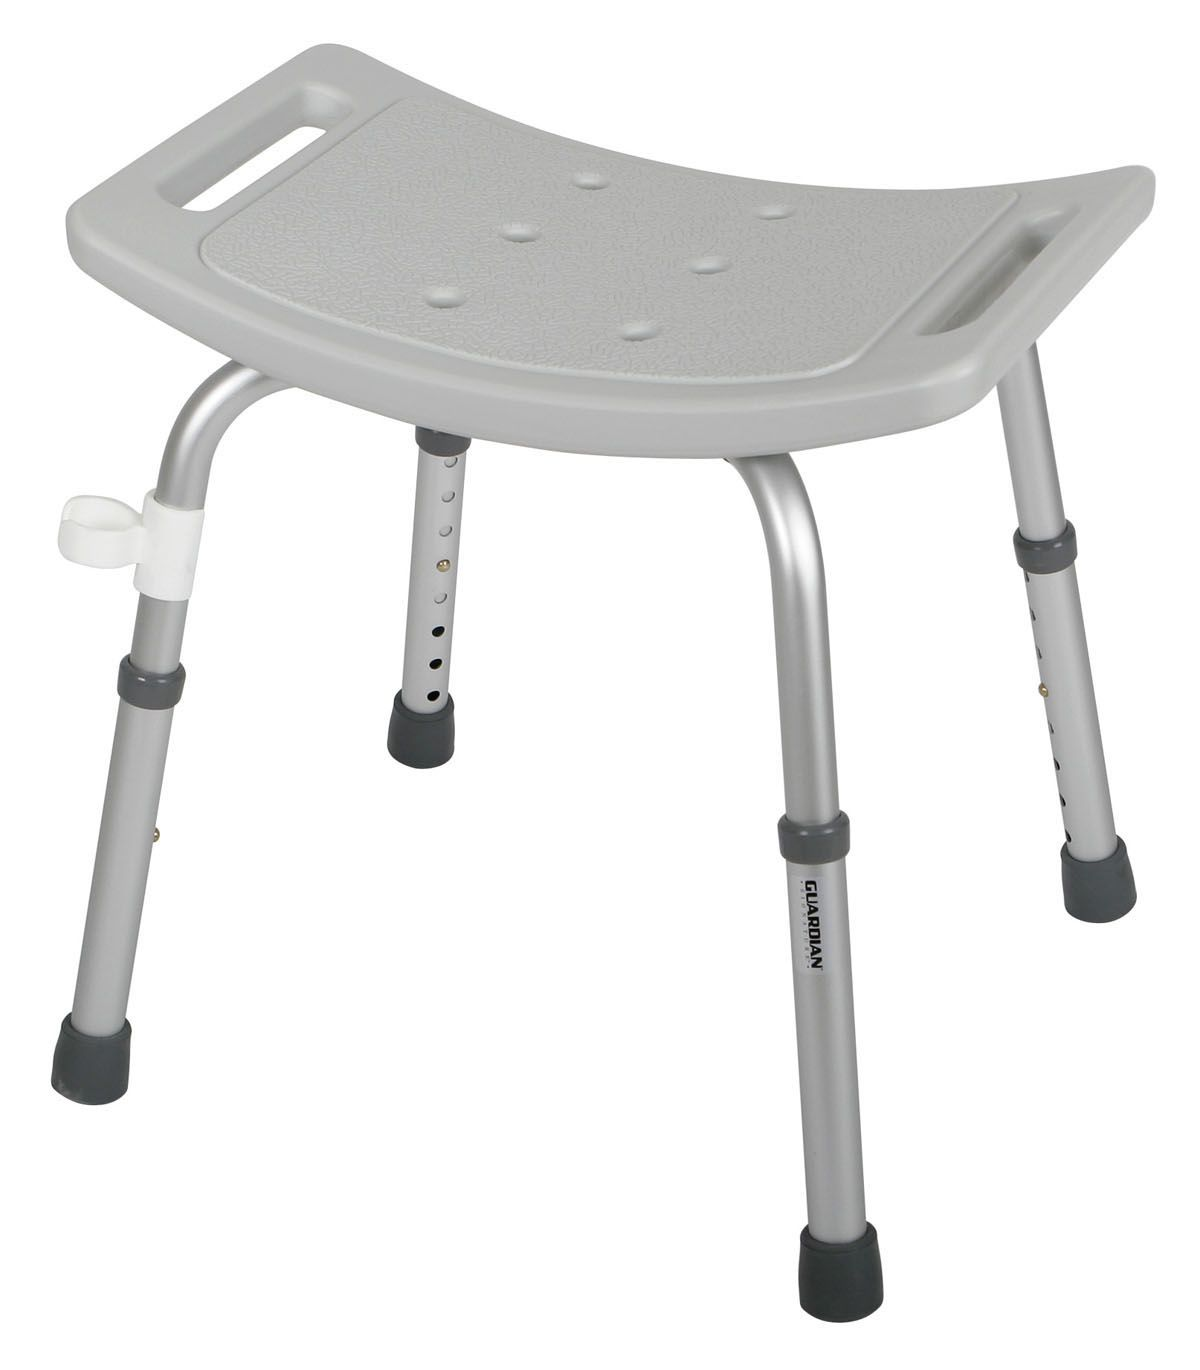 Shower Chair With Back Easy Care Shower Chair Without Back W O Back Ez Care